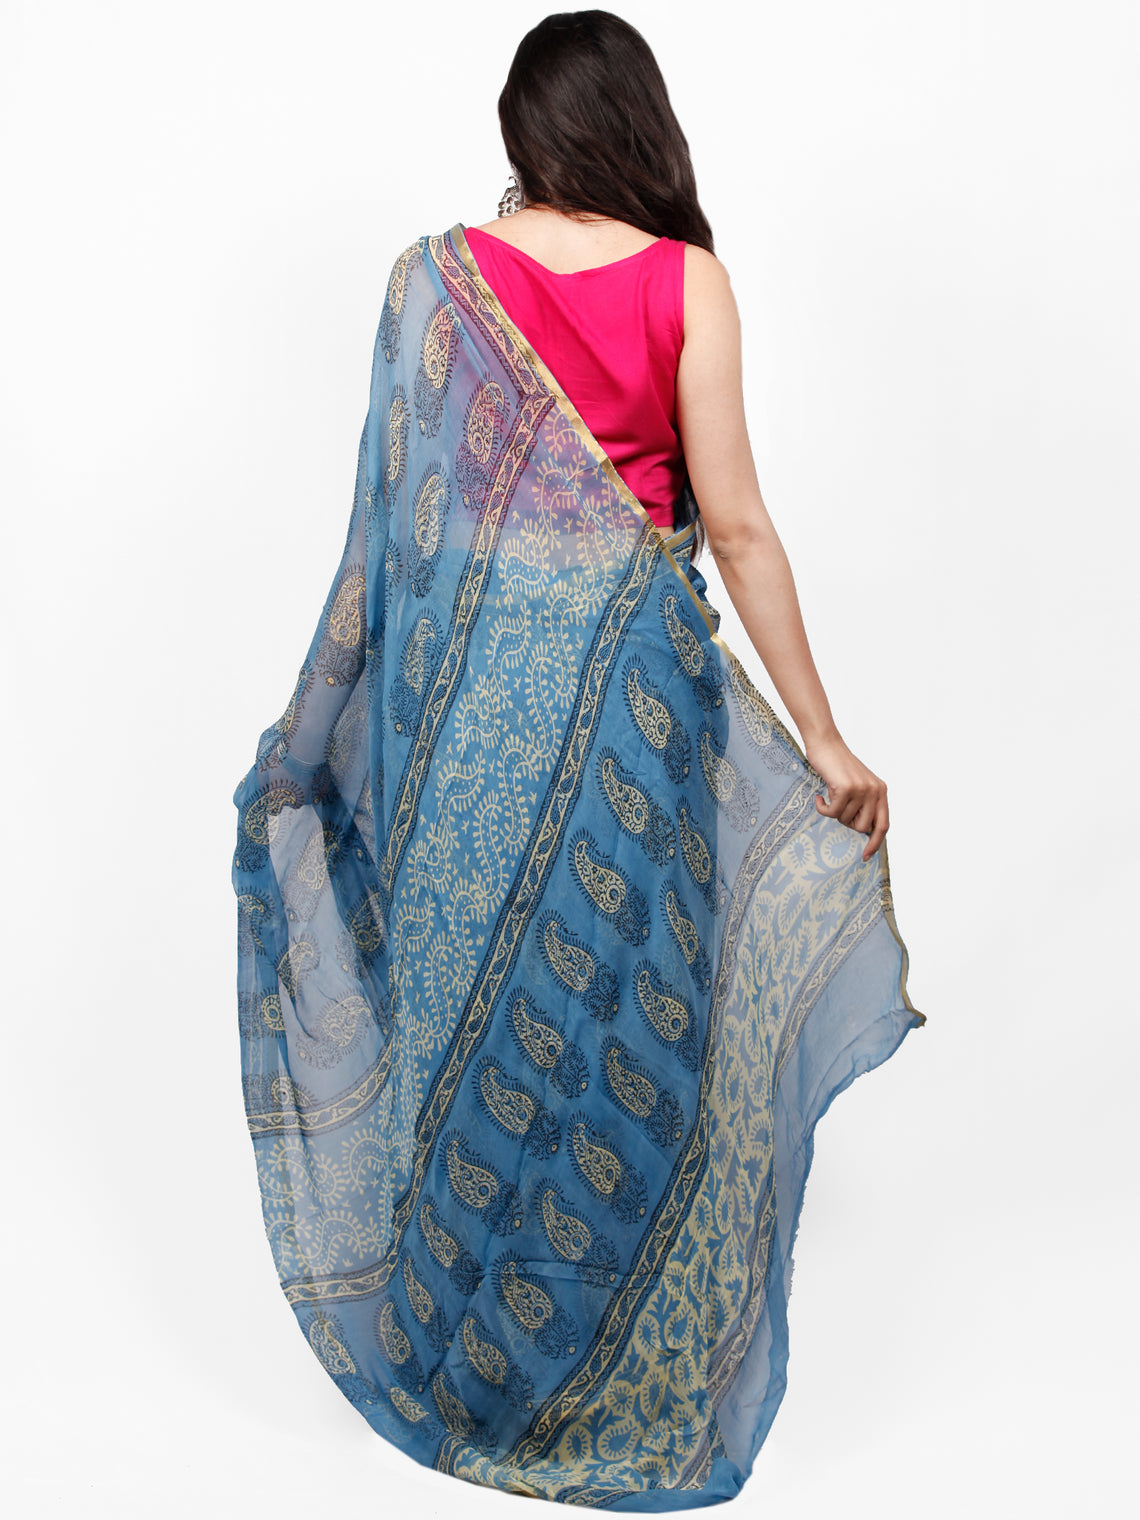 Sky Blue Yellow Hand Block Printed Chiffon Saree with Zari Border - S031703271